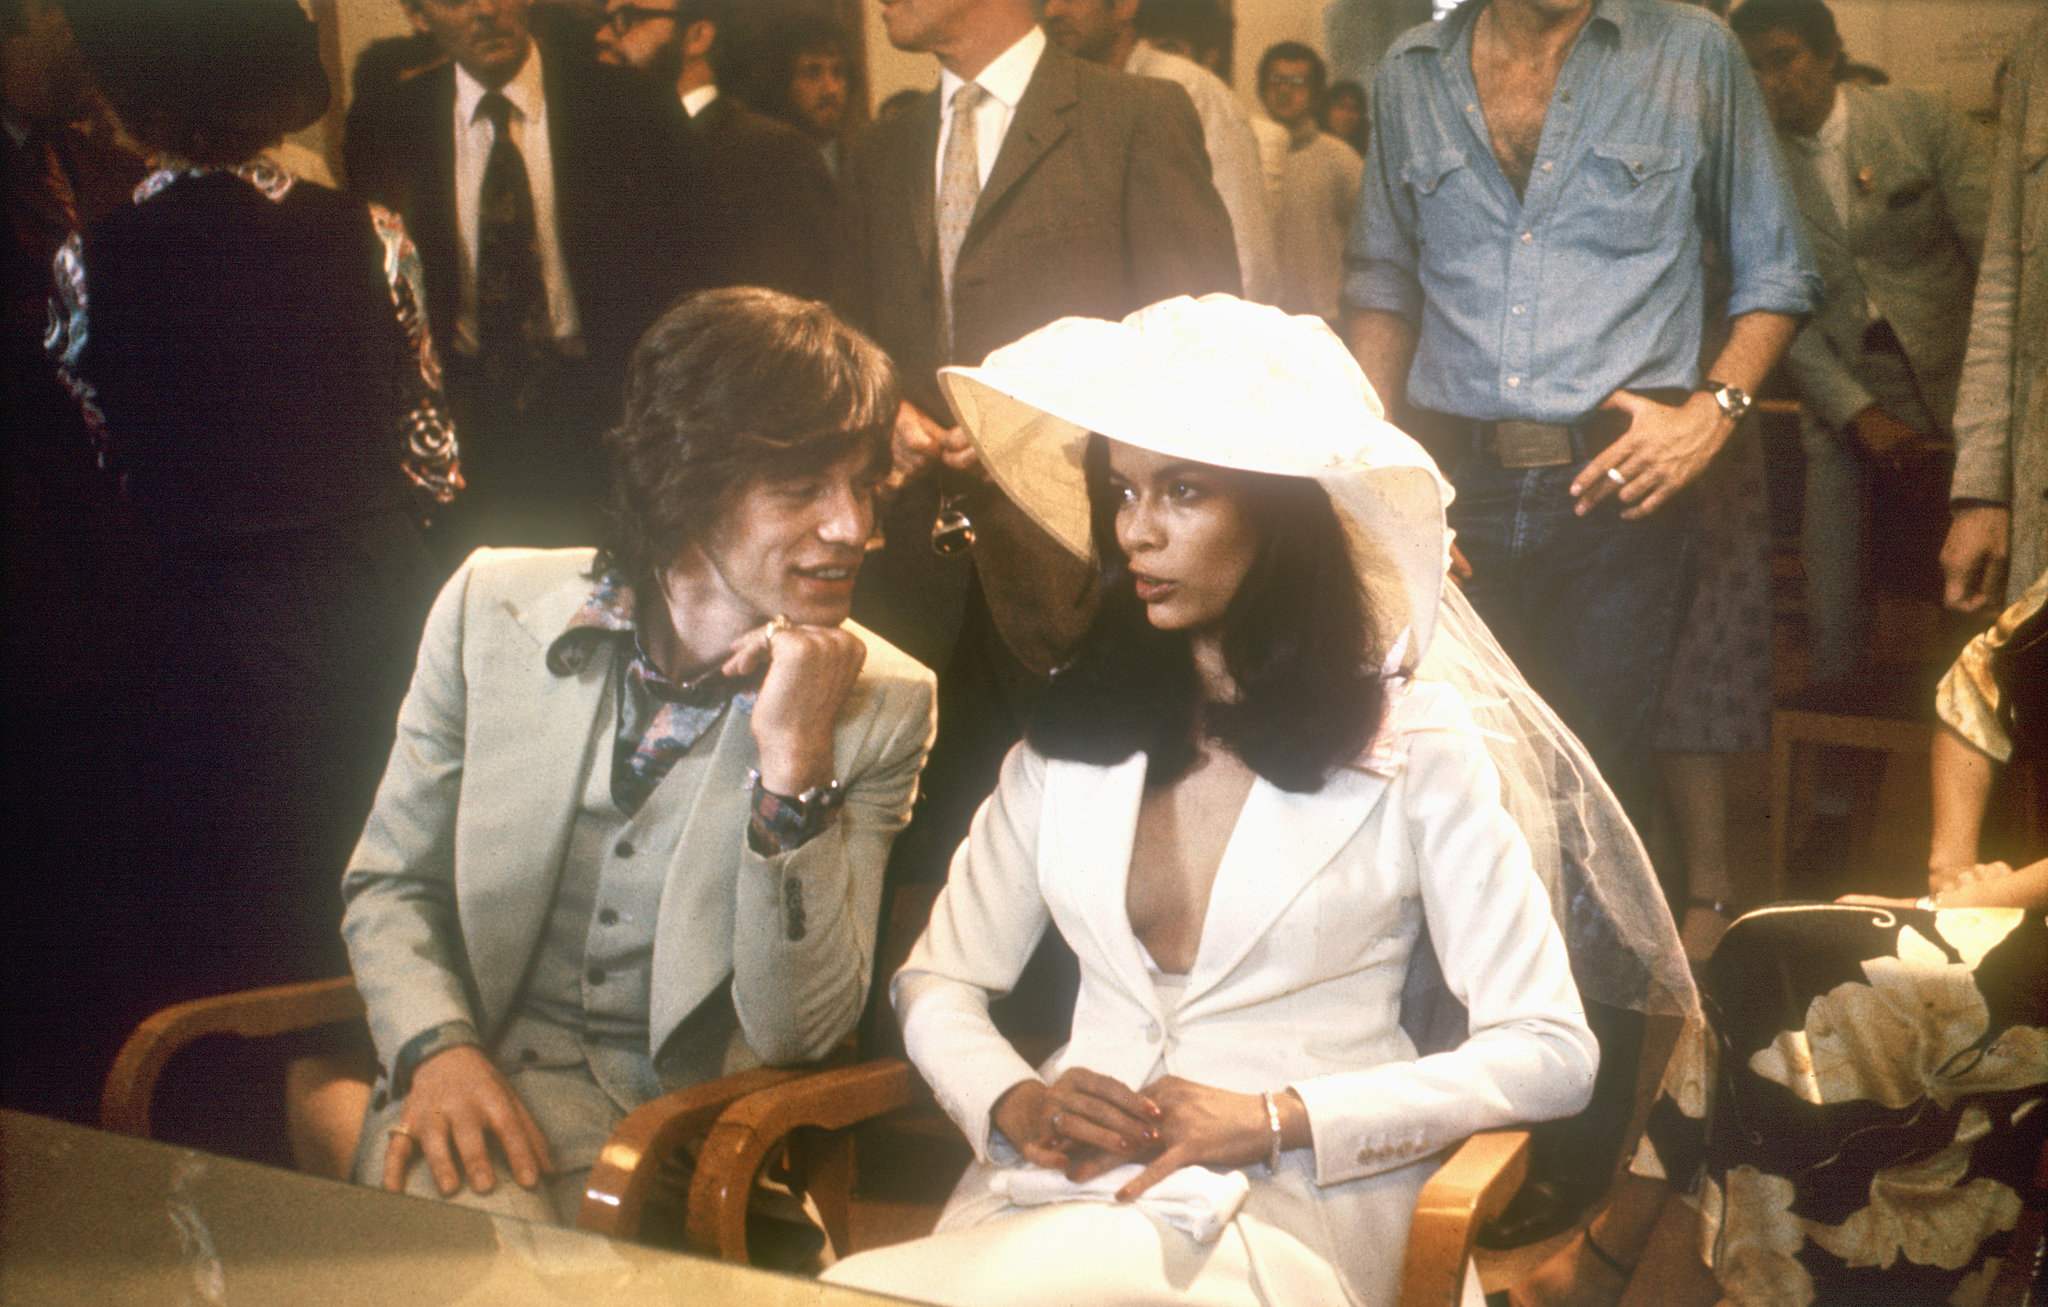 Mick and Bianca Jagger made it official during May of 1971 in St.-Tropez.